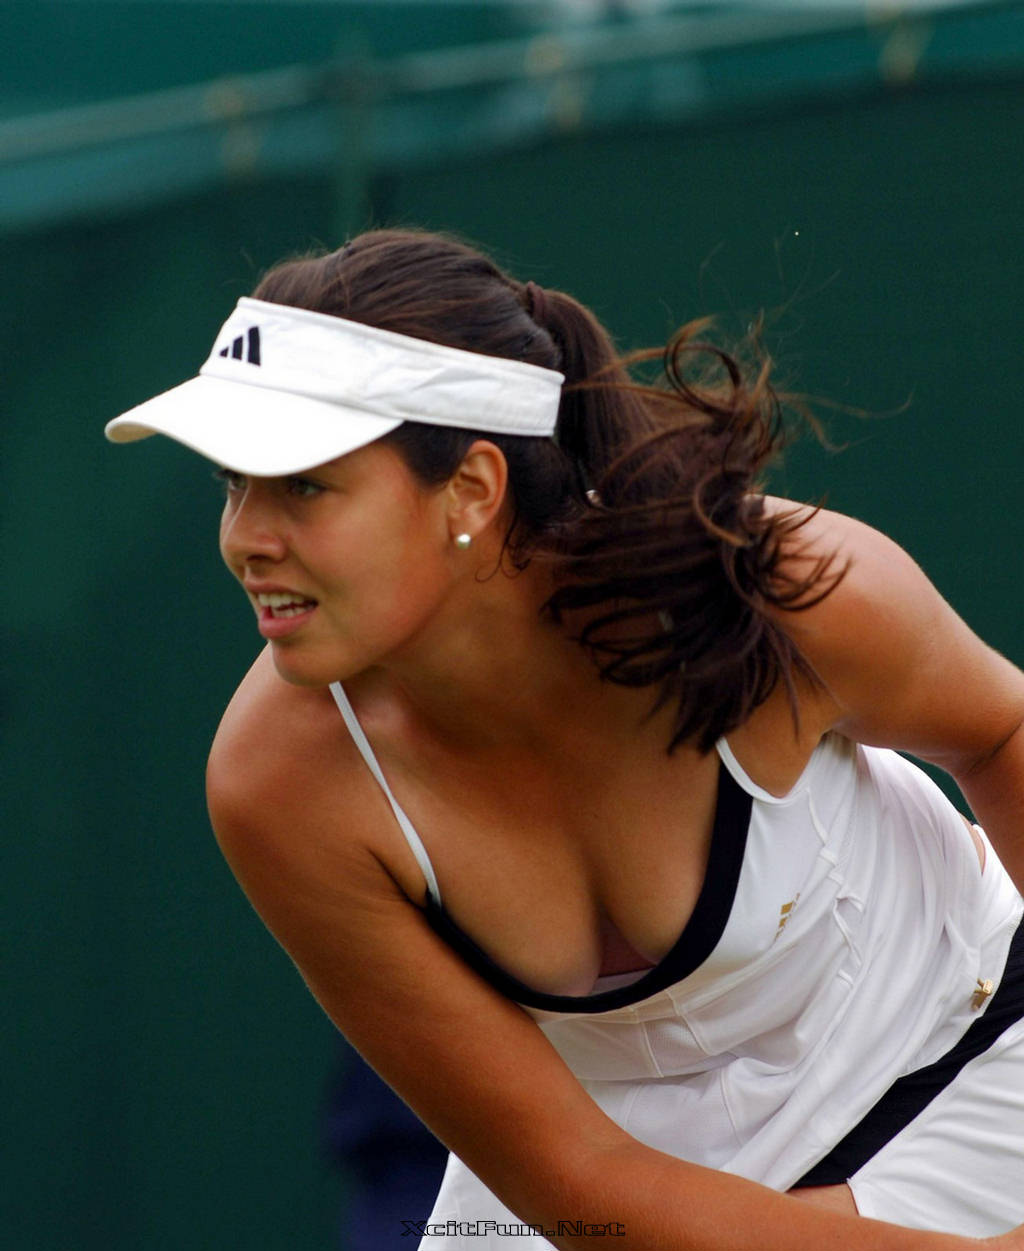 Ana Ivanovic Breasts hottest female athlete - page 2 - antsmarching forums